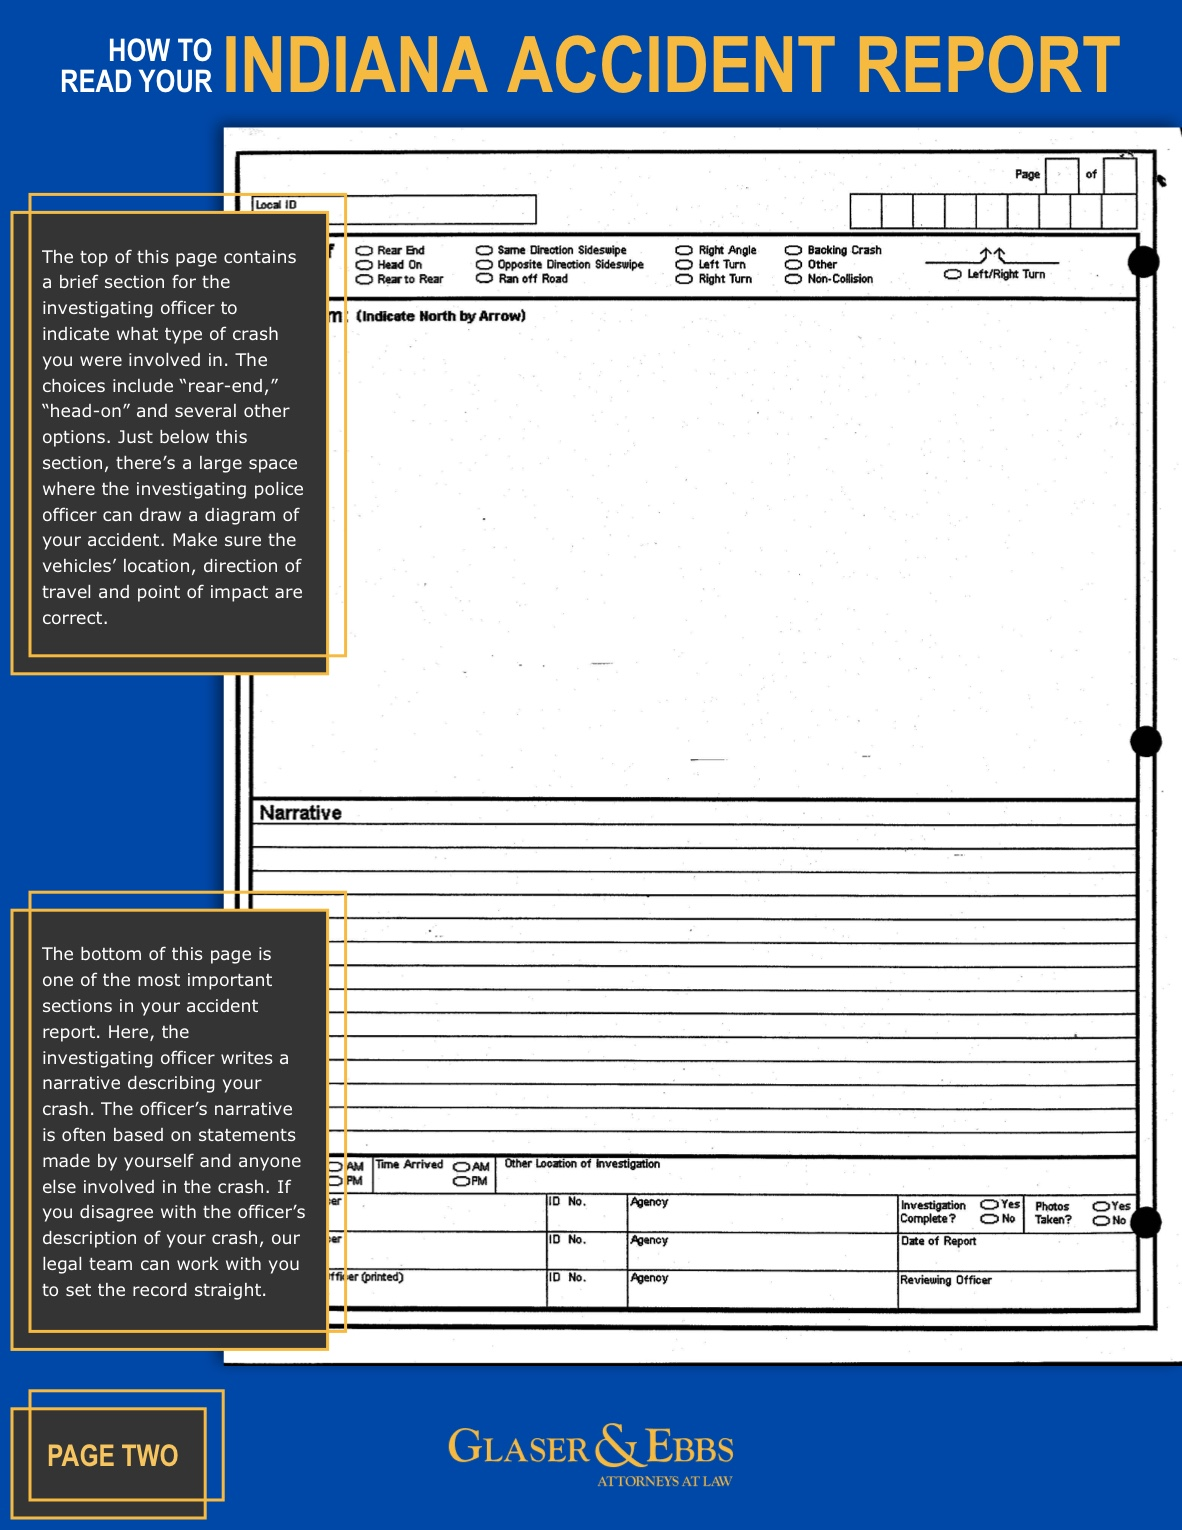 How to Read Your Accident Report pg. 2